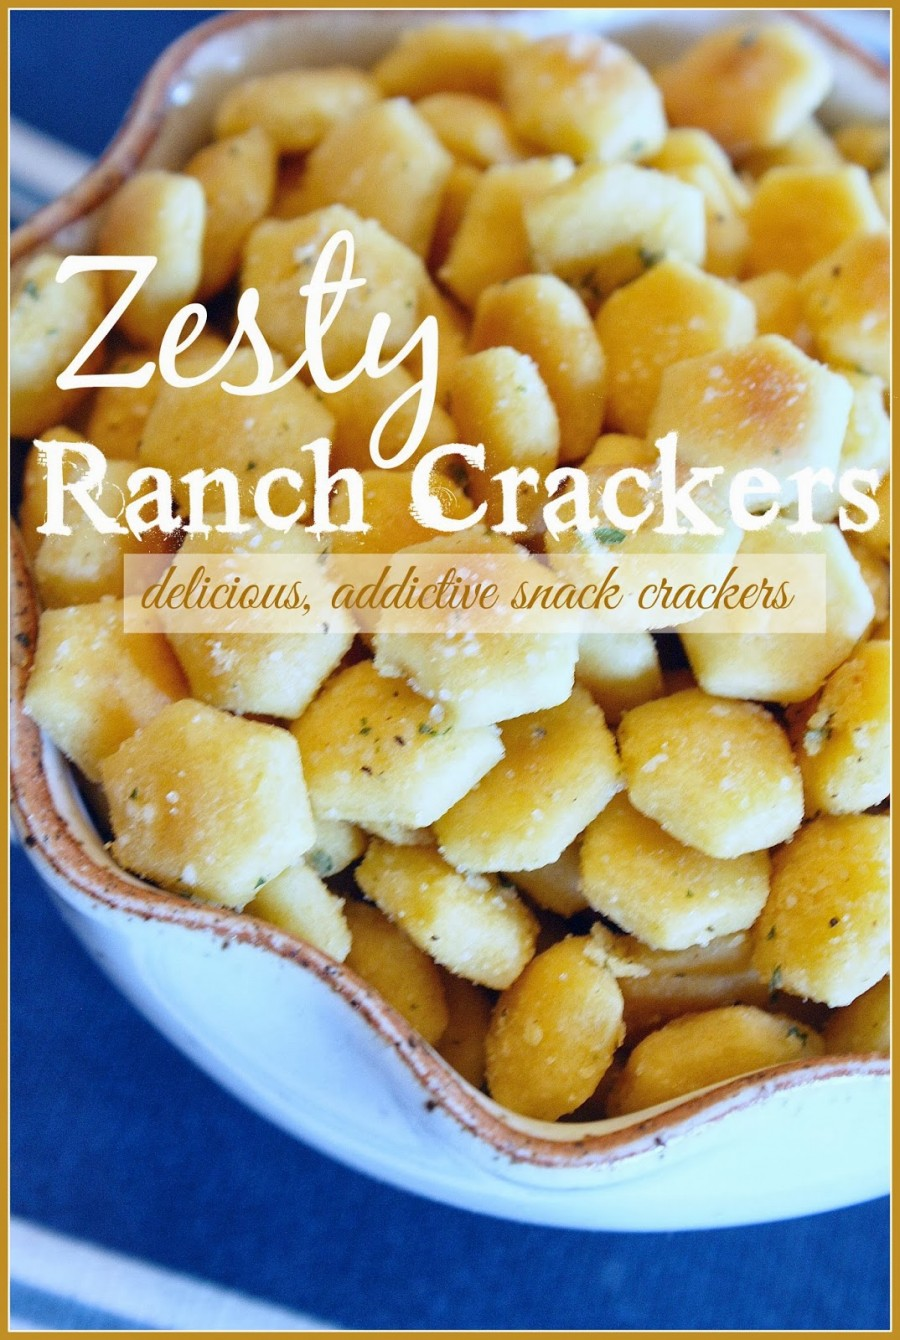 ZESTY RANCH CRACKERS